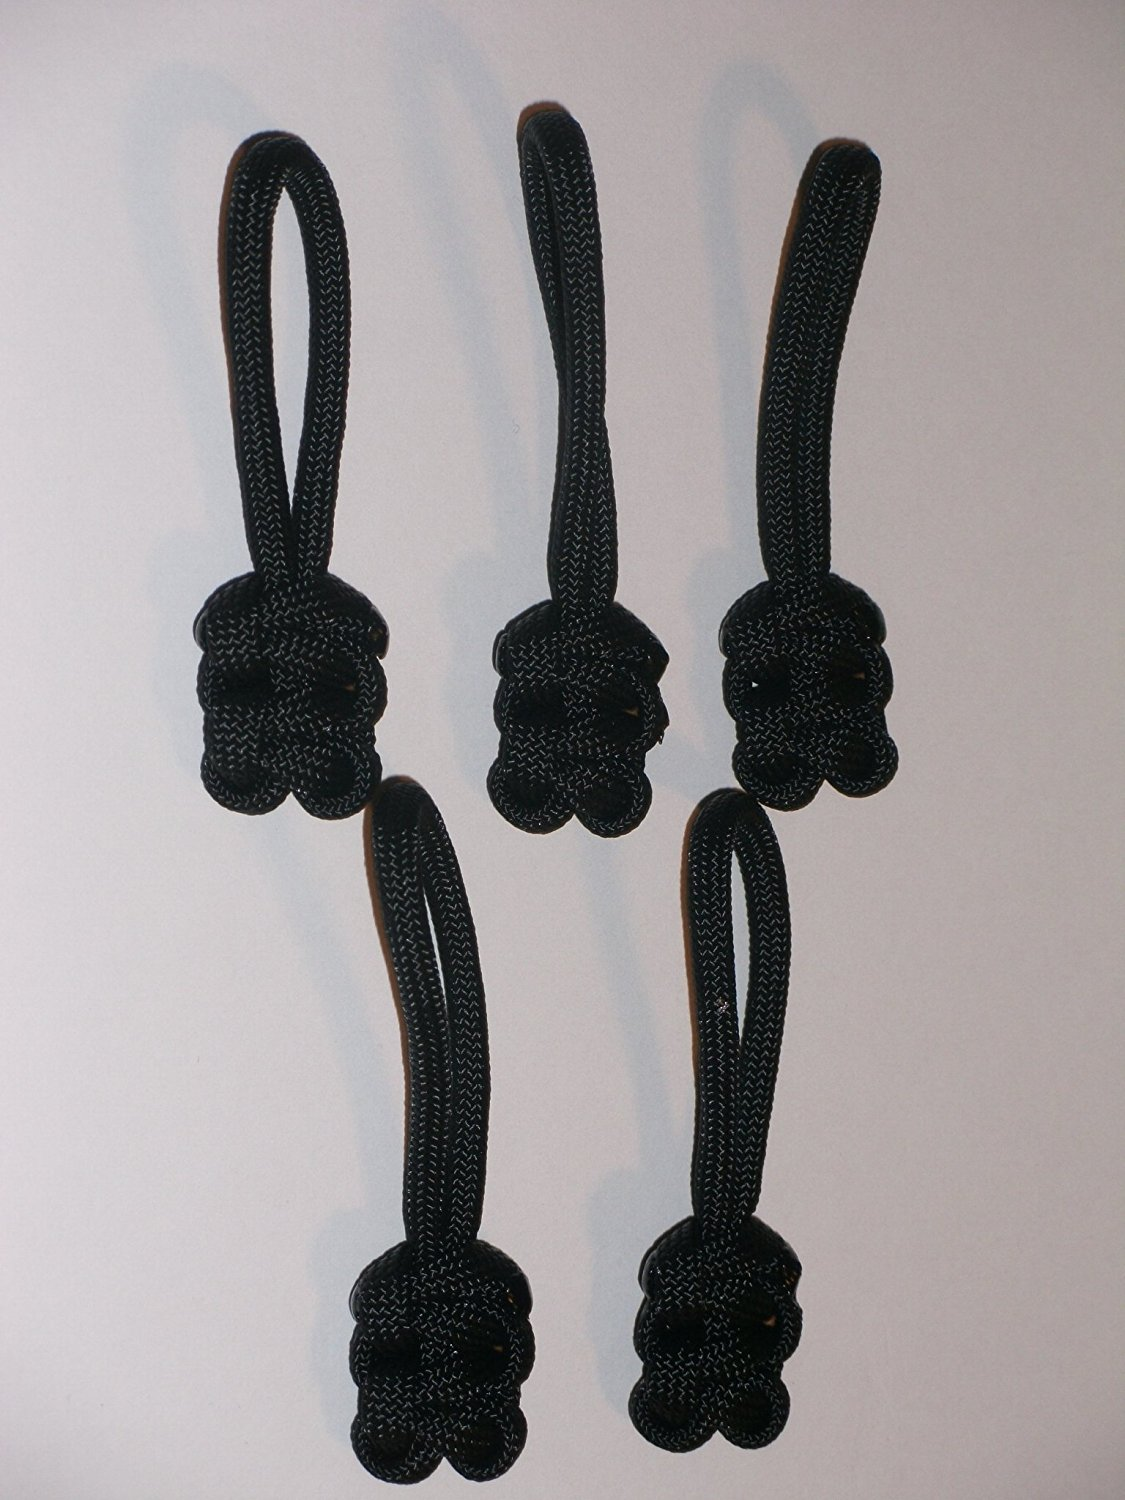 RedVex Paracord Zipper Pulls / Lanyards - Lot of 5 - ~2.5 - Black